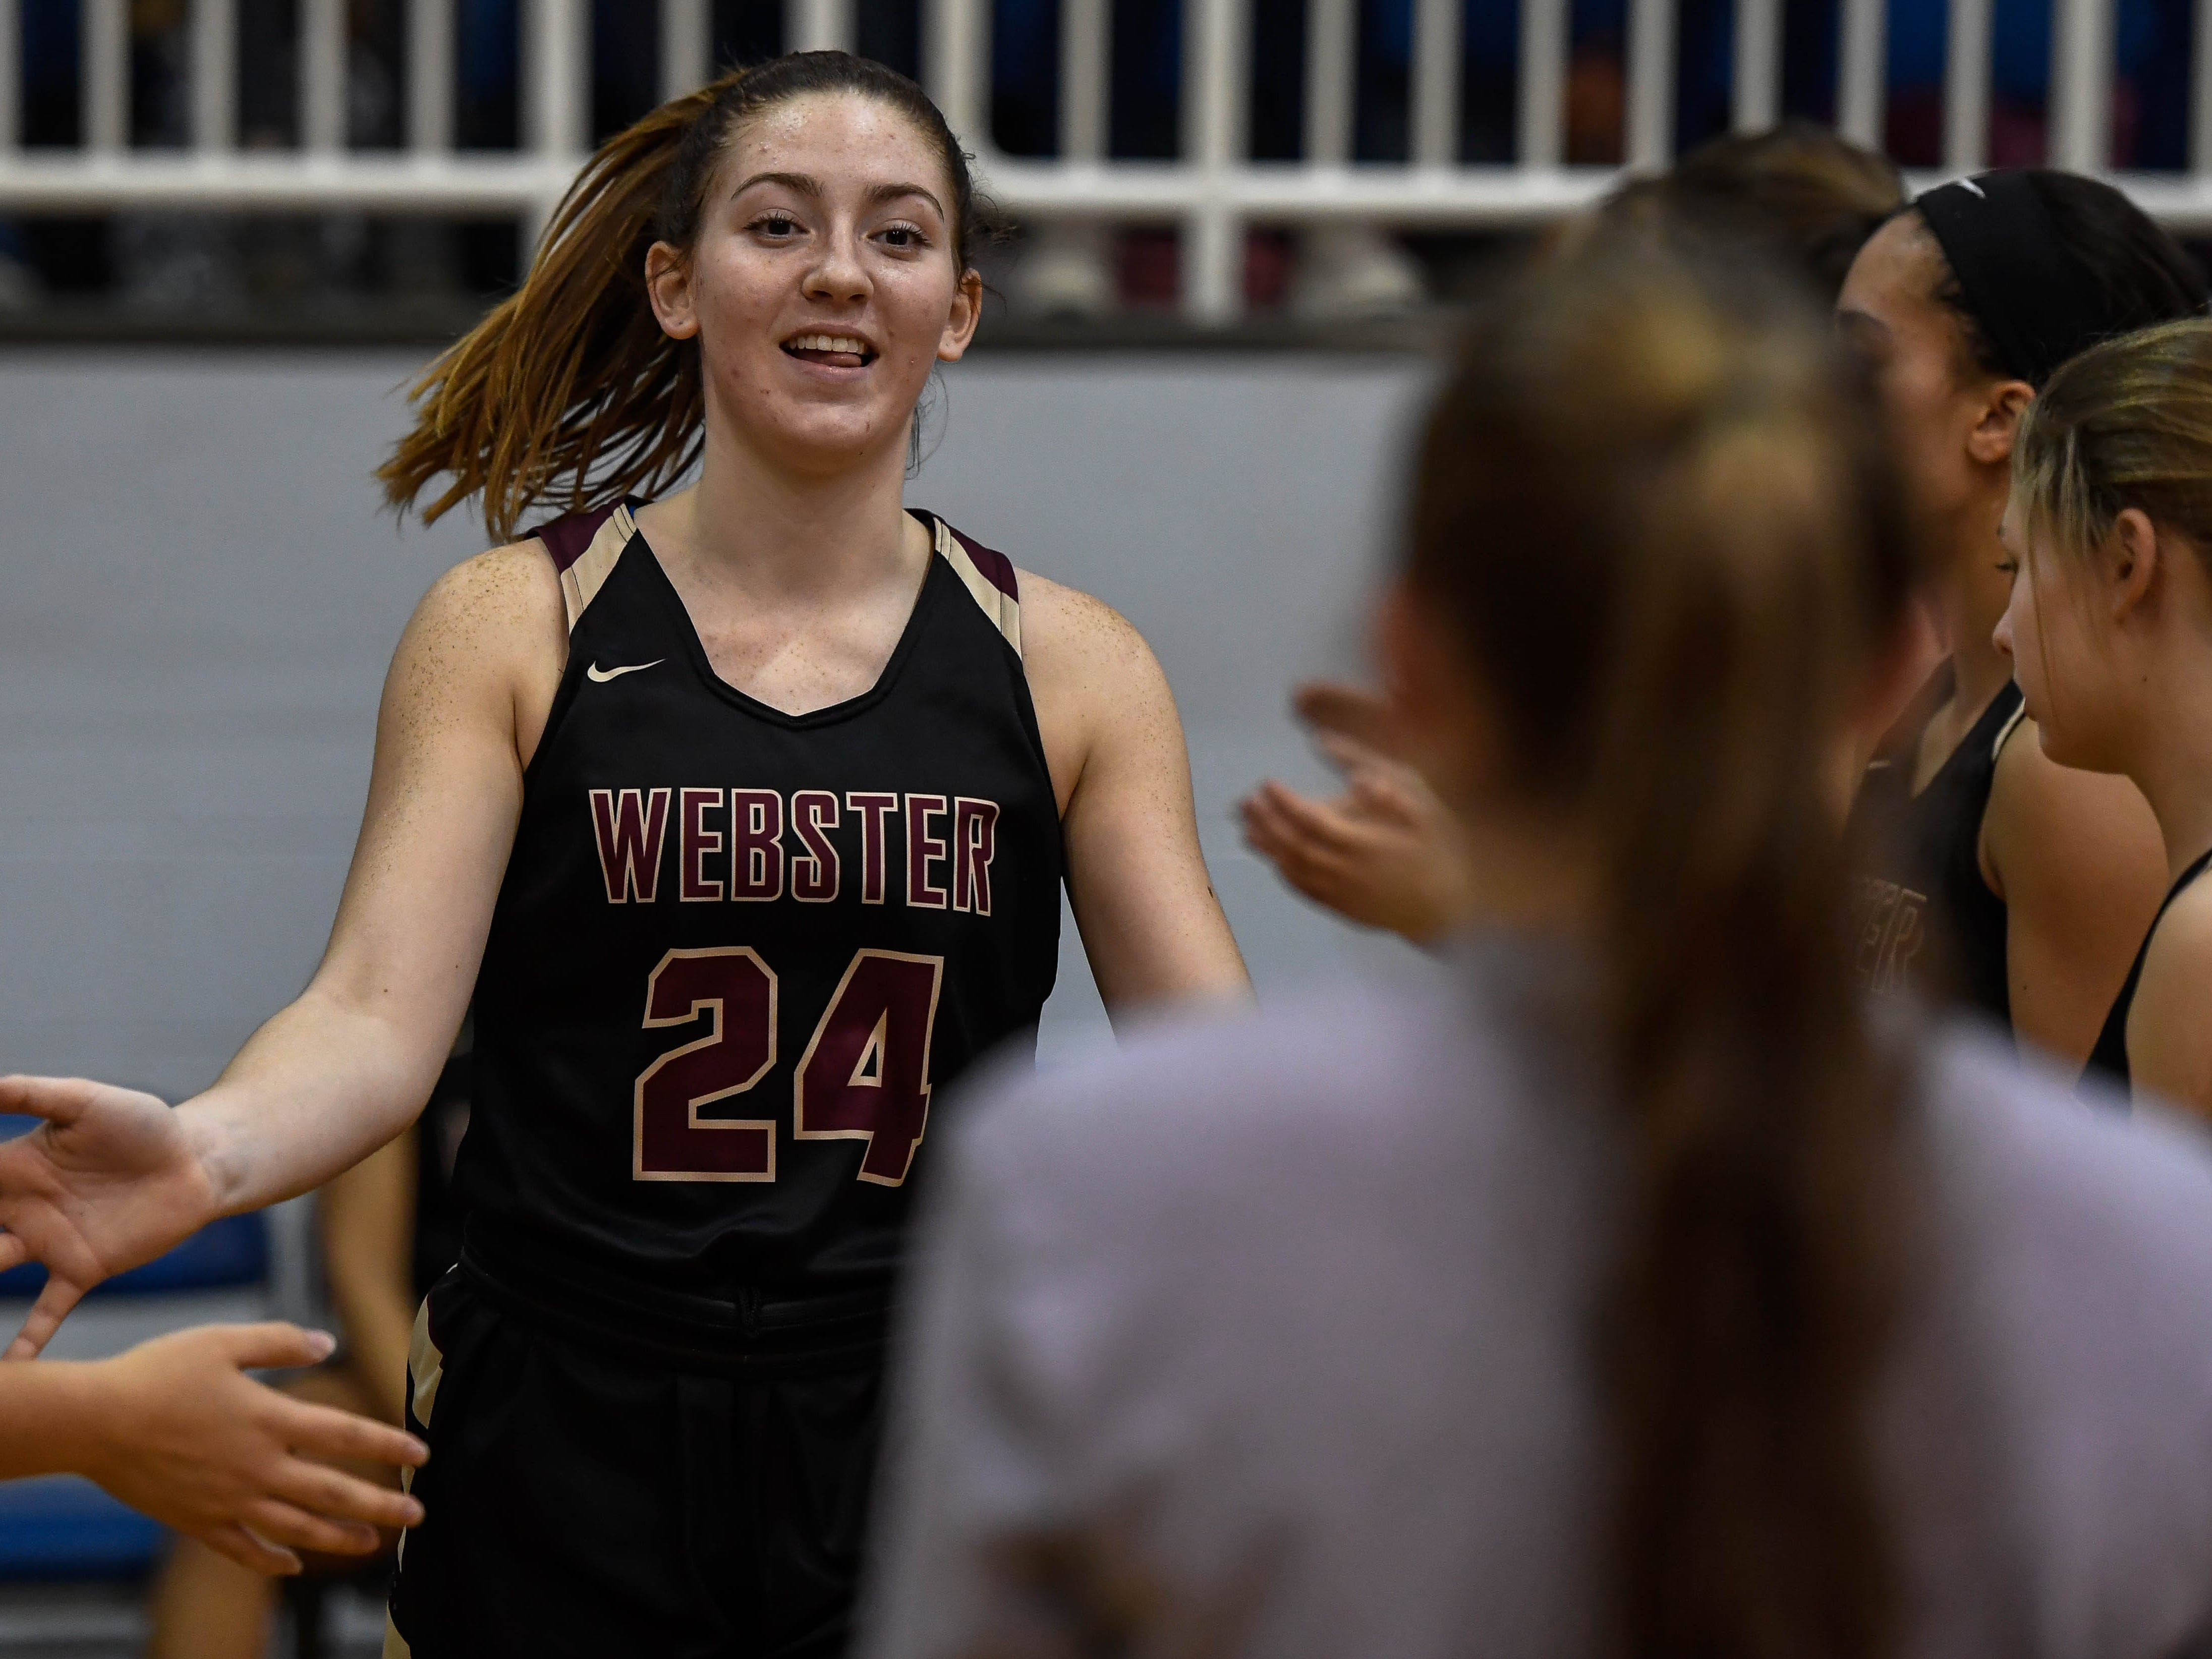 Webster County's Adeline McDyer (24) in introduced as the Webster County Lady Trojans play the Henderson County Colonels for the Girls Second Region Championship at the Rocket Arena in Marion Tuesday, March 5, 2019.